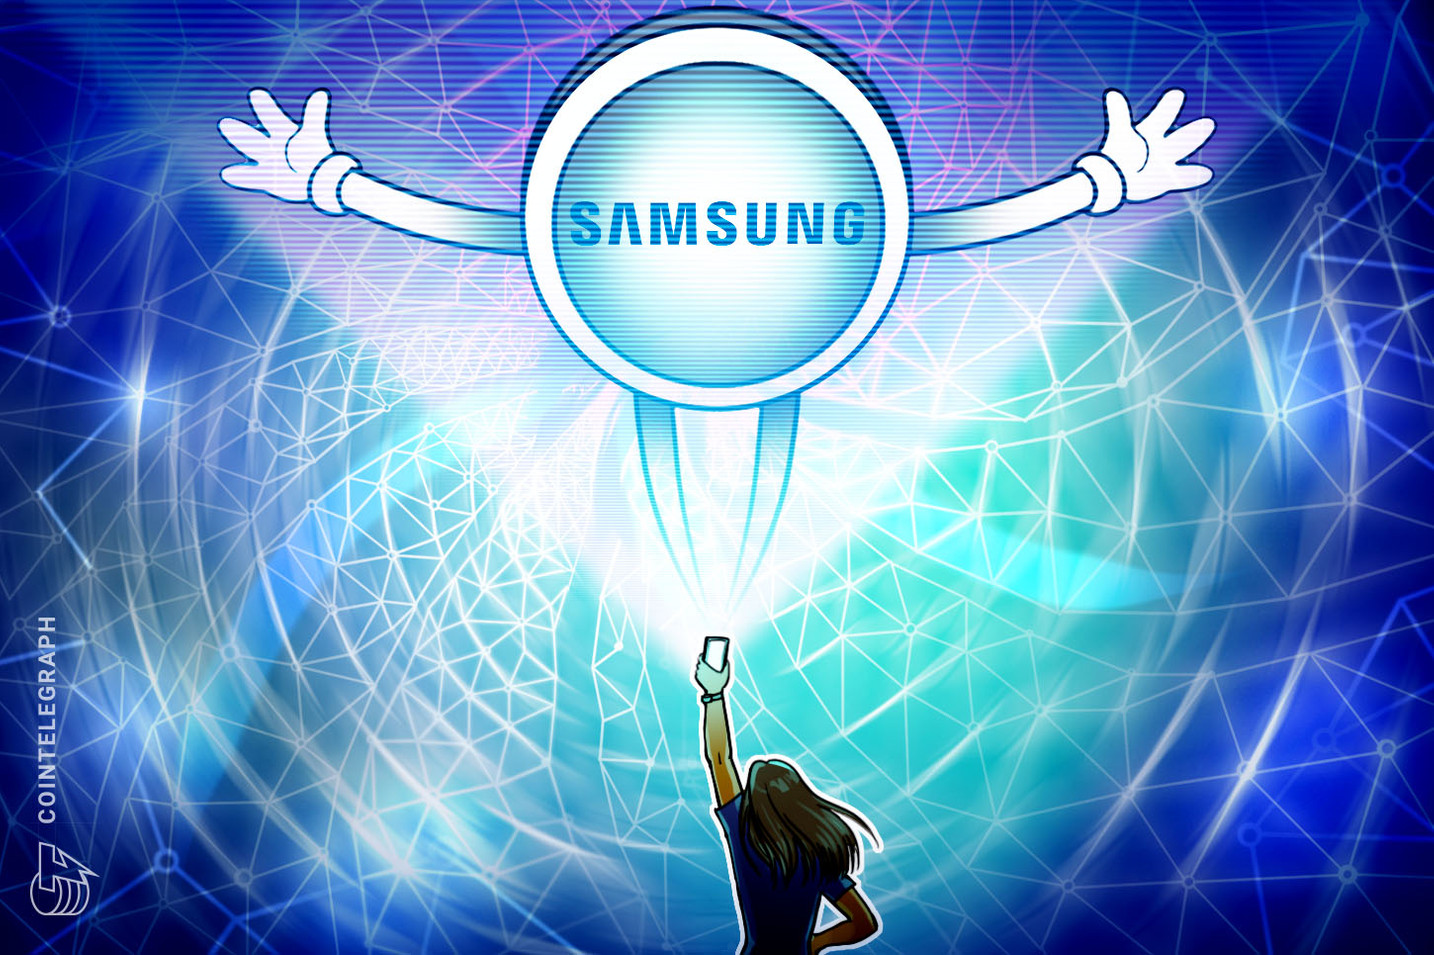 Samsung Partners With Israeli Fintech on Blockchain Solution for Merchants